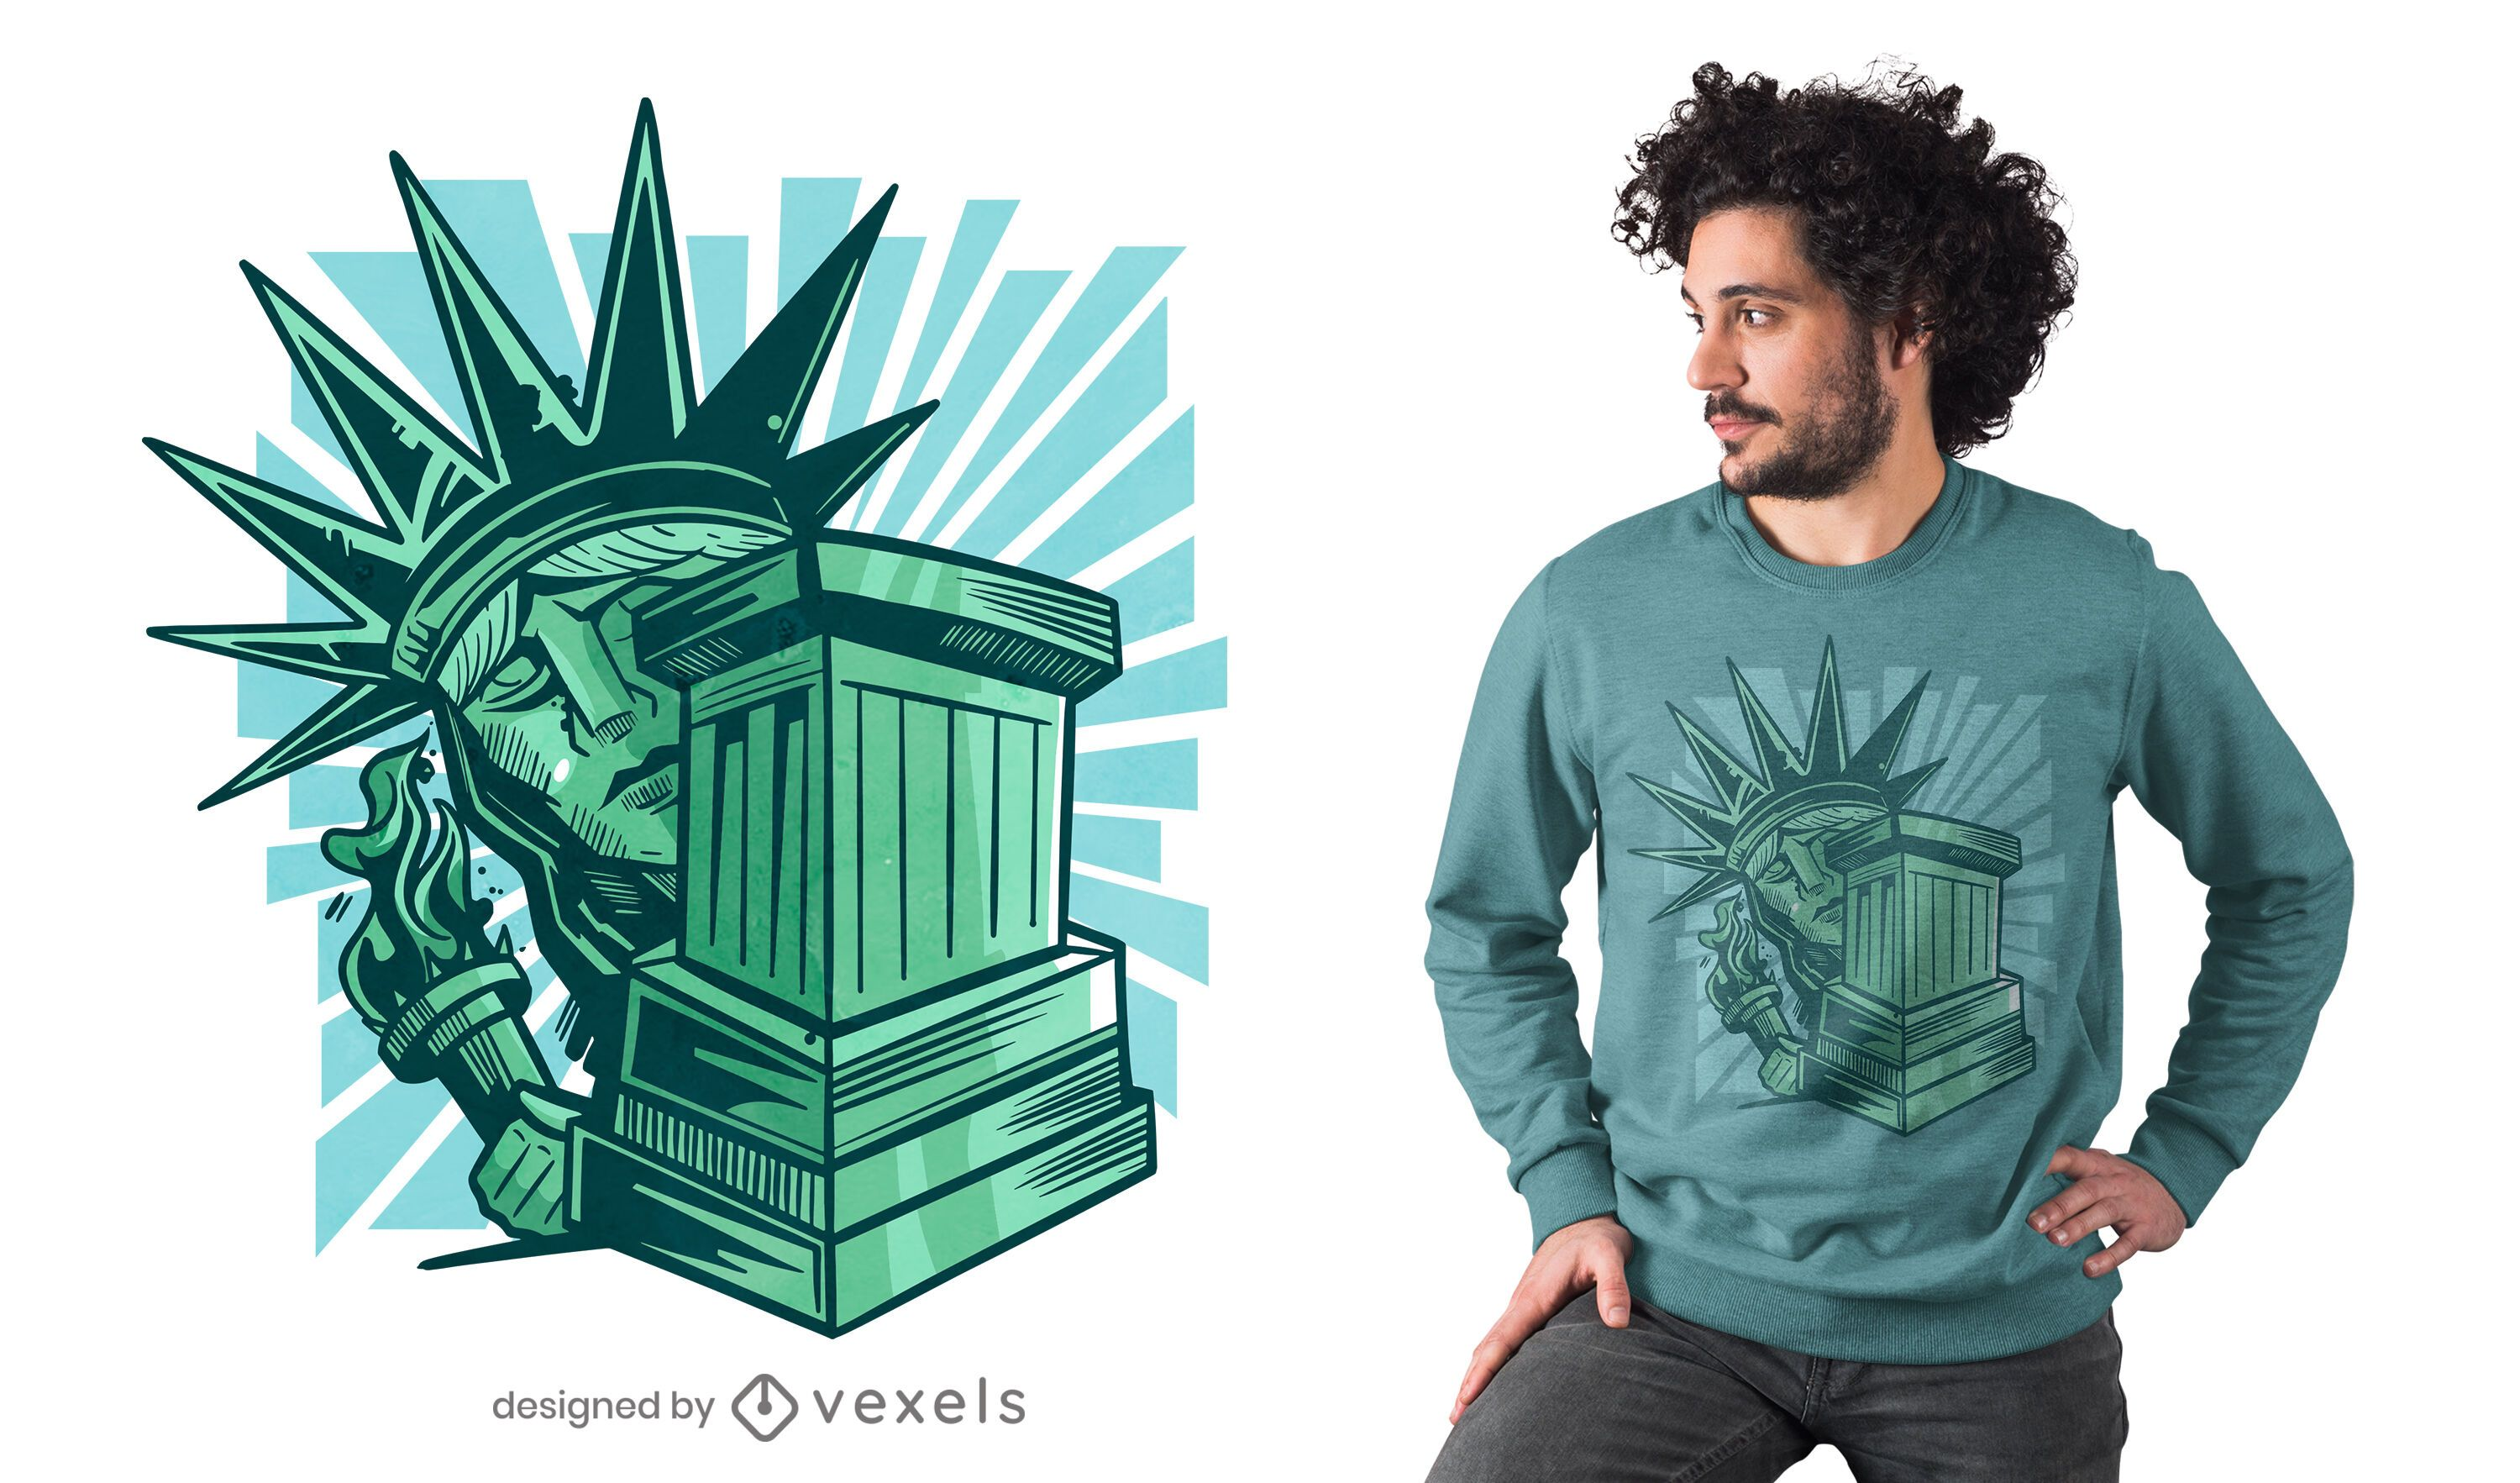 Scared statue of liberty t-shirt design